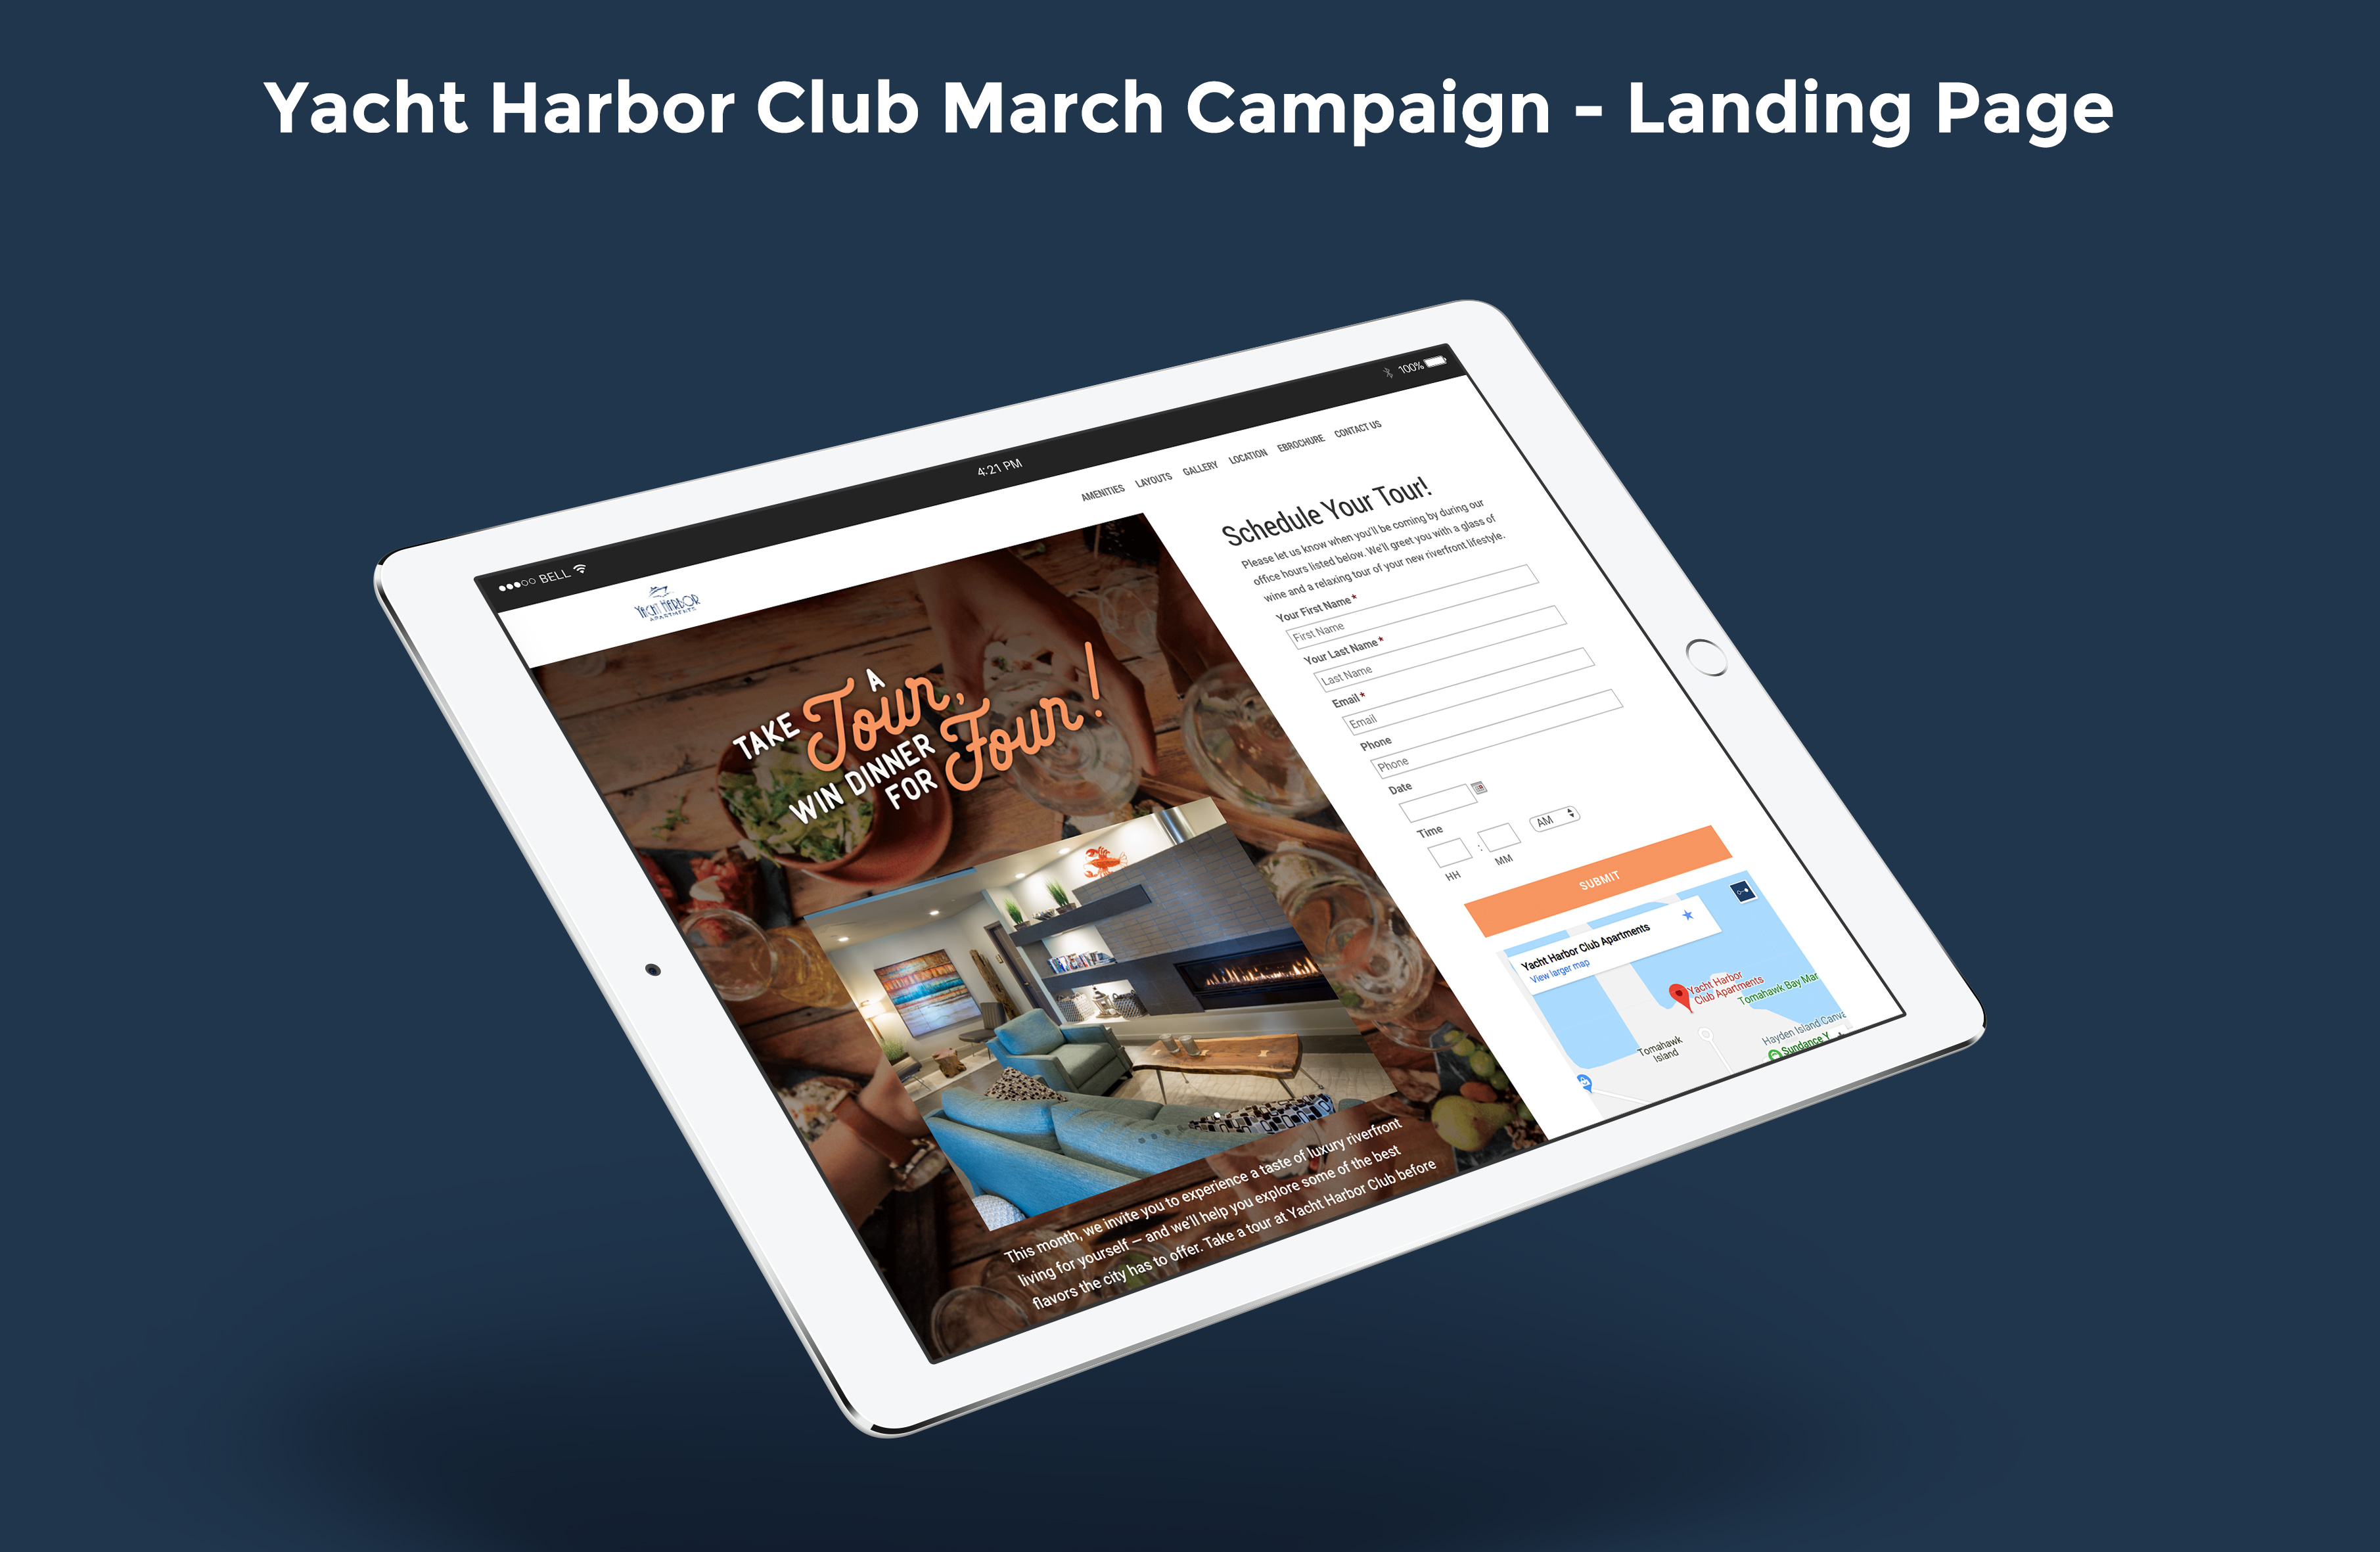 Yacht Harbor Club's March Campaign Landing Page